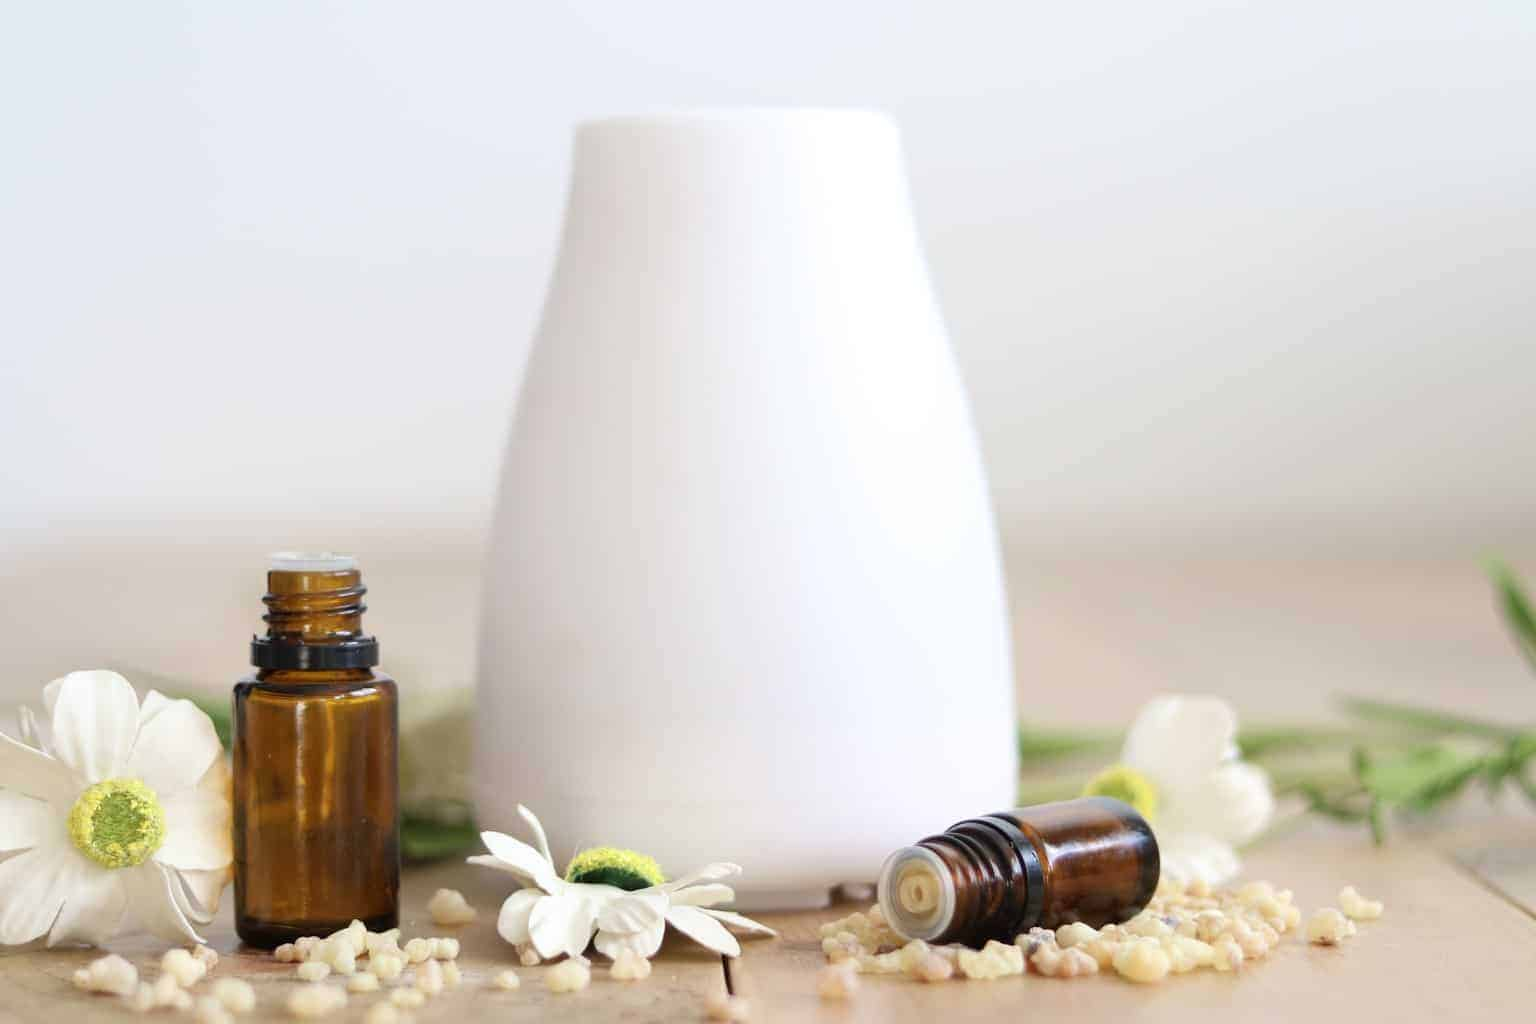 white essential oil diffuser surrounded by flowers and oil bottles on wooden table